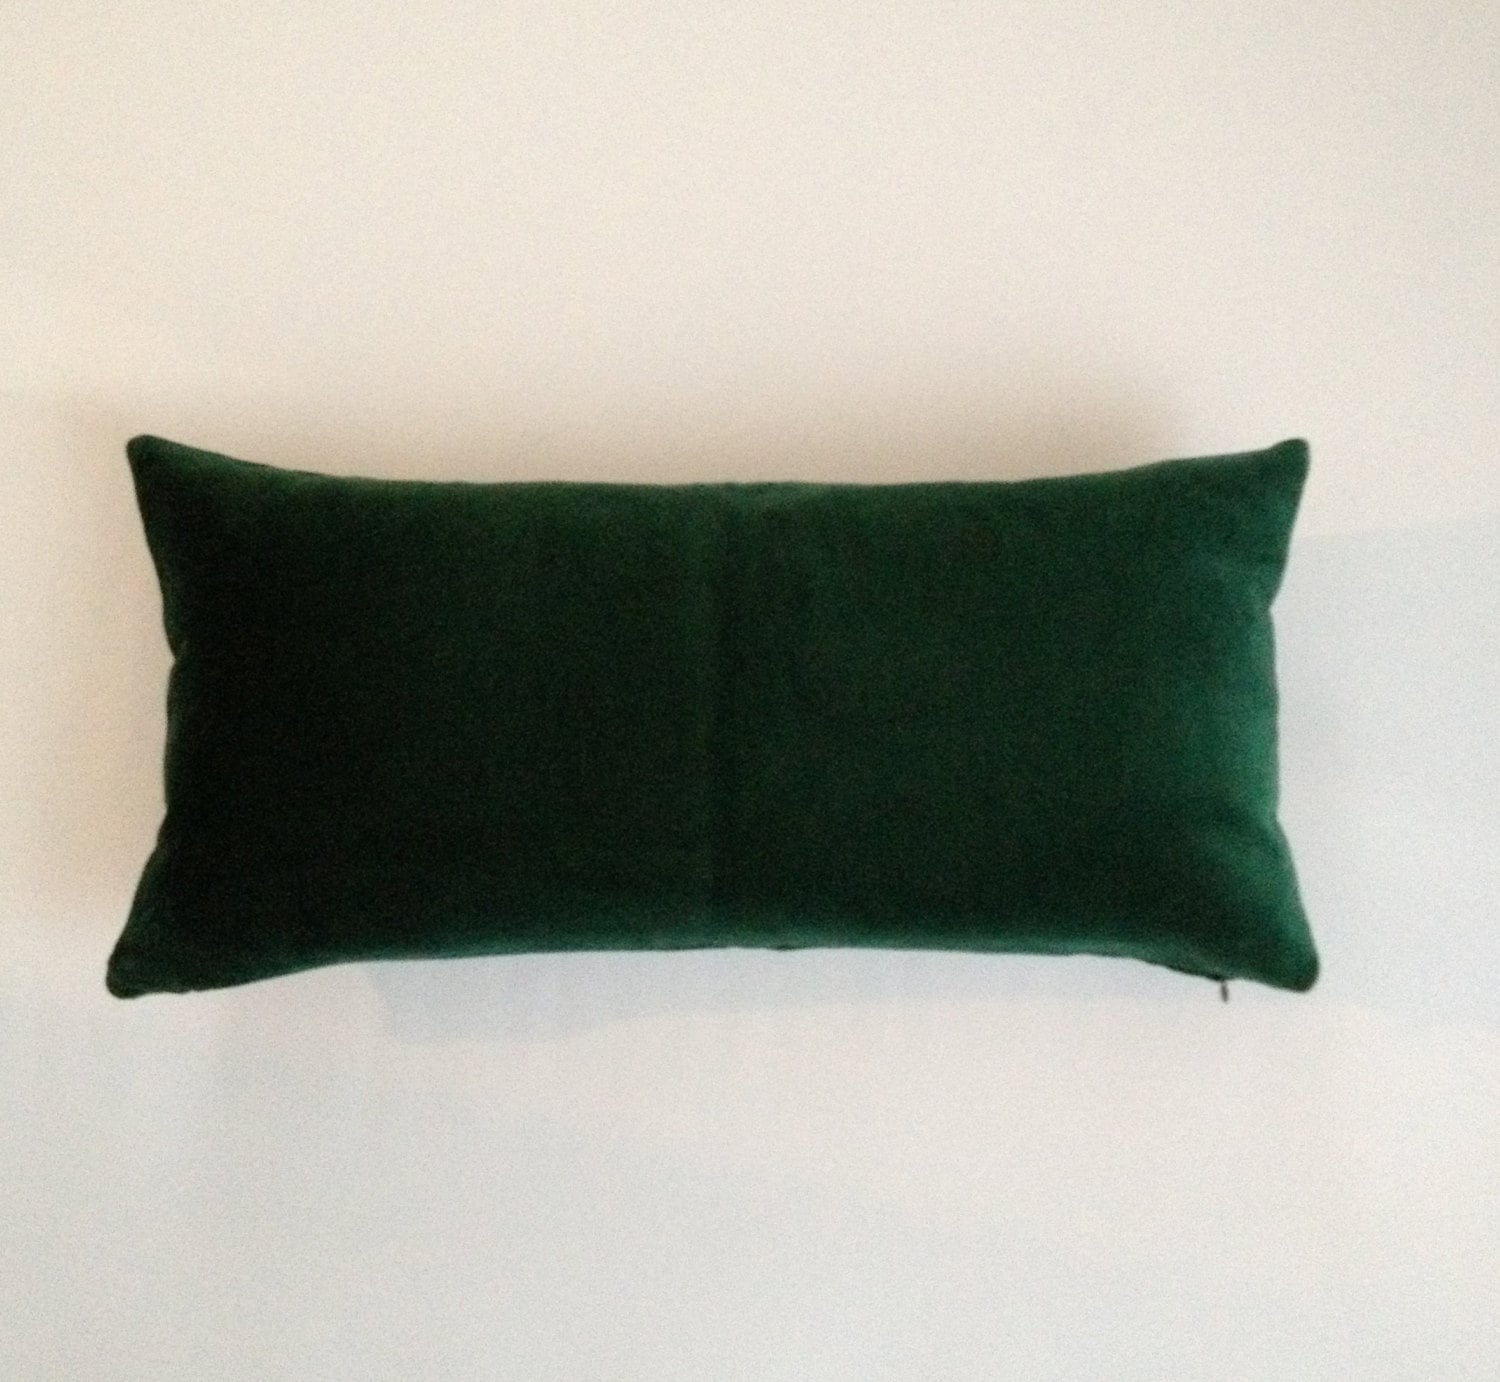 Decorative Bolster Pillow Covers : Hunter Green Decorative Bolster Pillow Cover 10x20 to 12x24